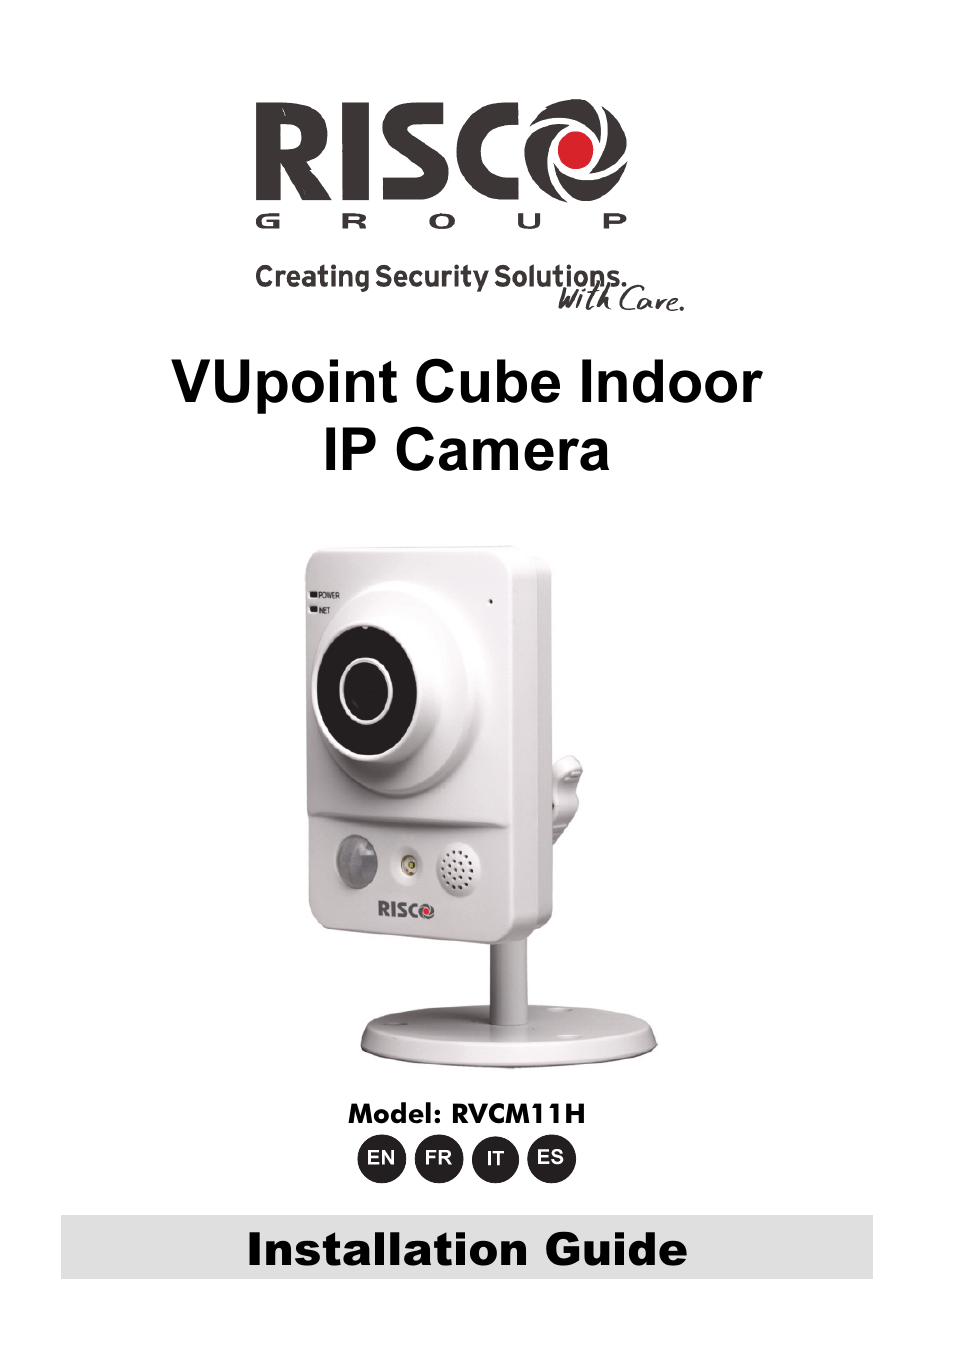 Risco Group Vupoint Indoor Ip Camera Rvcm11h User Manual 92 Pages